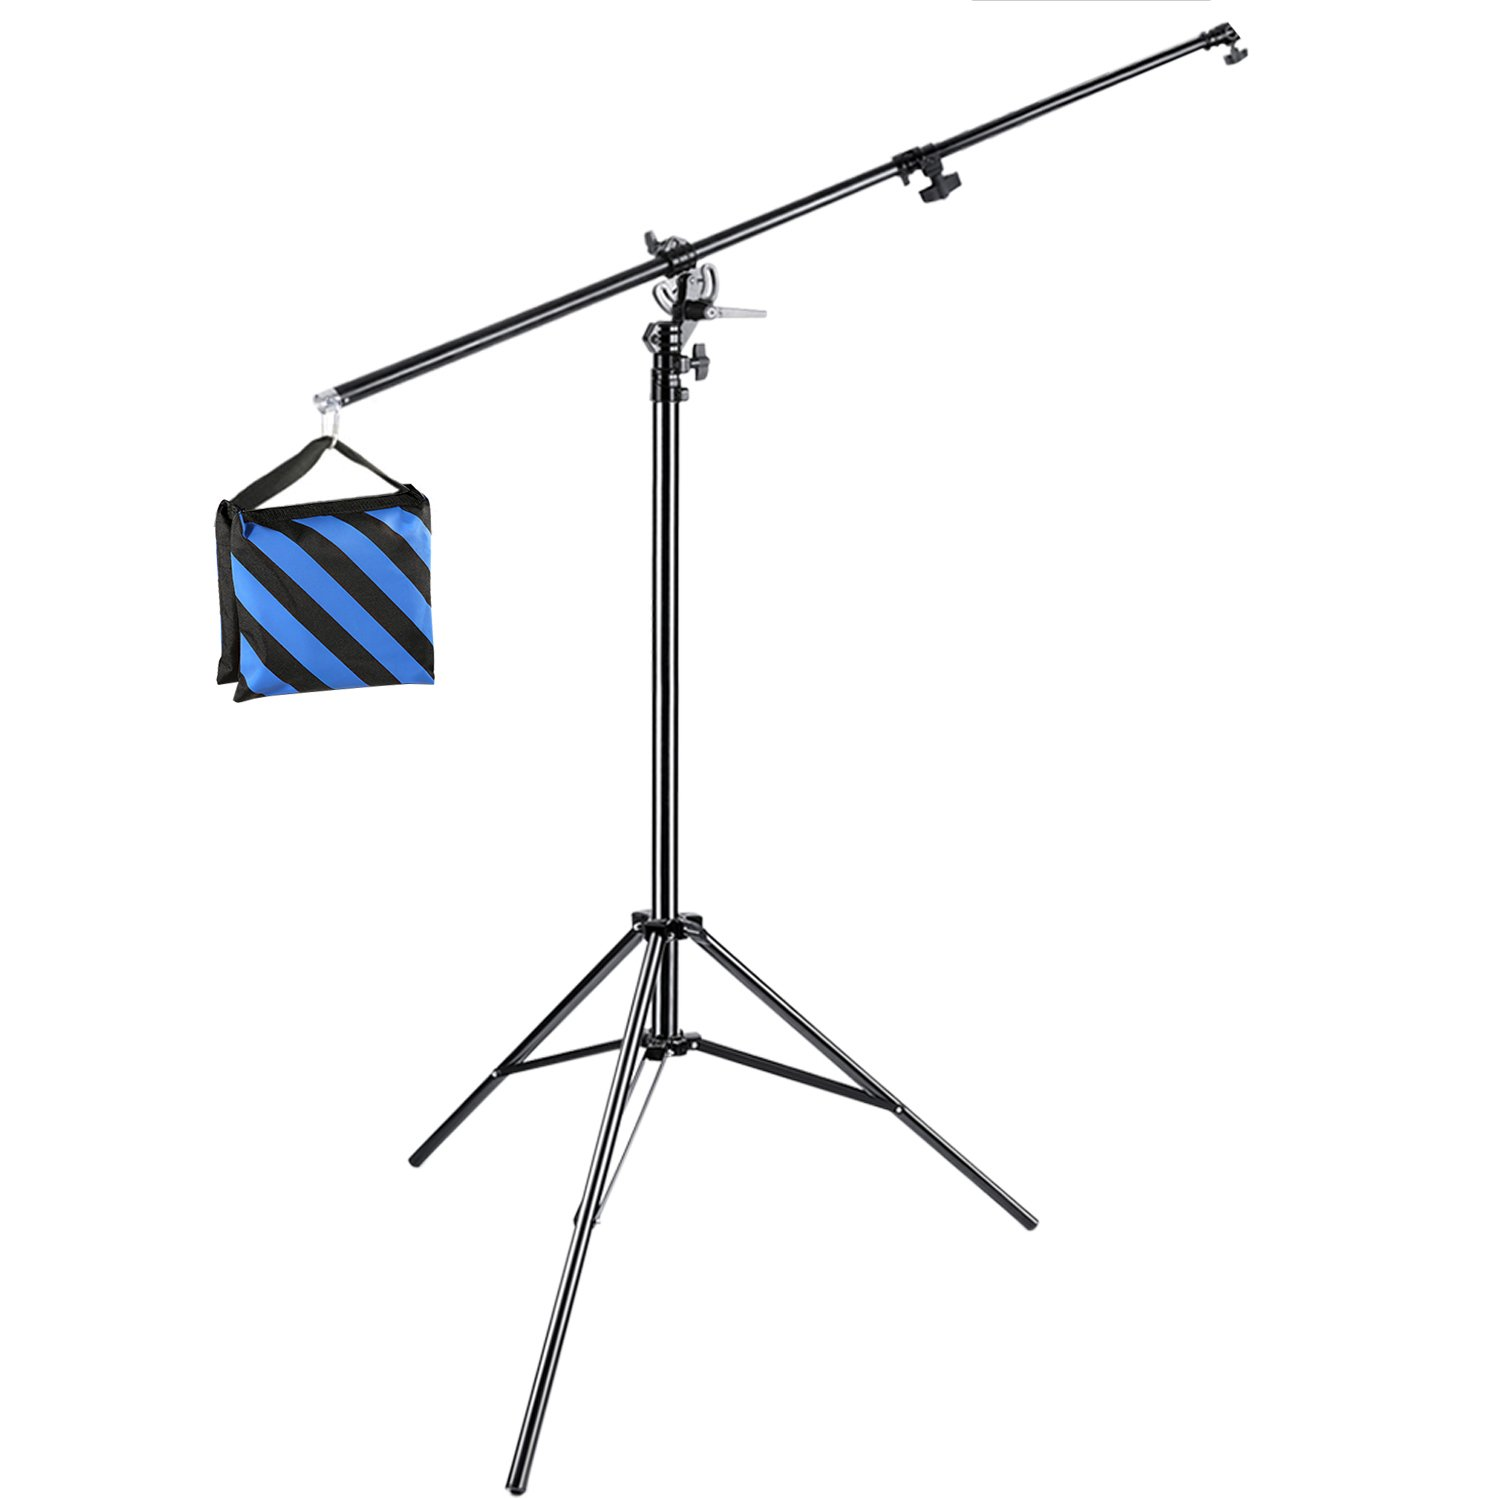 Neewer 2-in-1 Light Stand (original-black/blue)